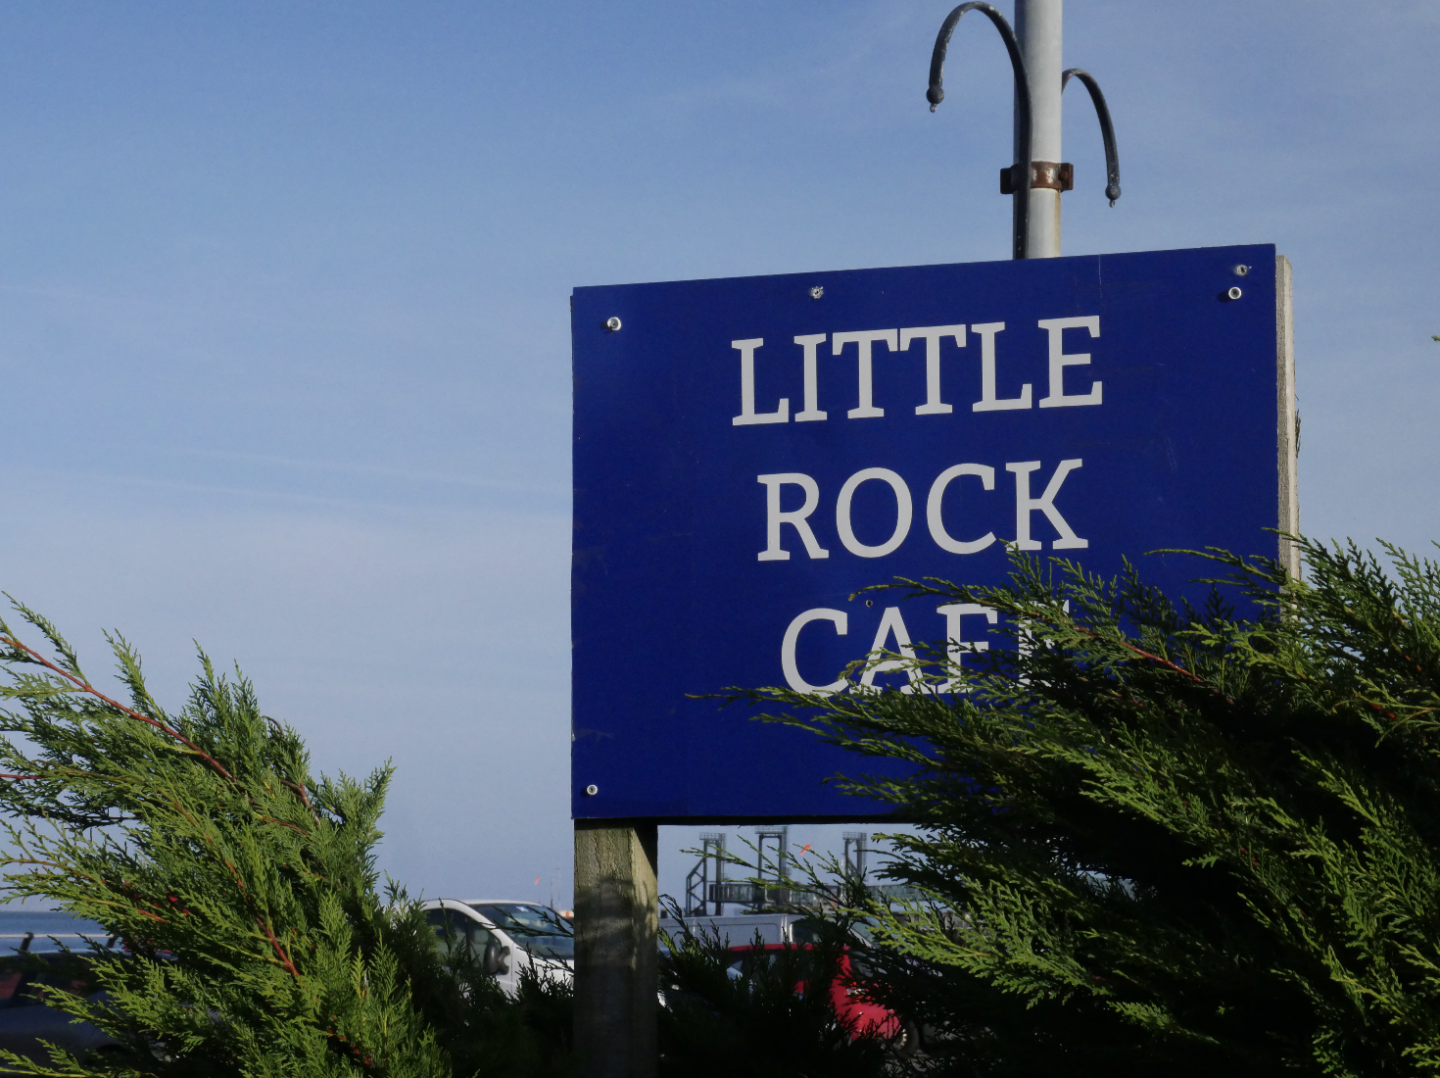 Little Rock Cafe in Brodick Isle of Arran Scotland